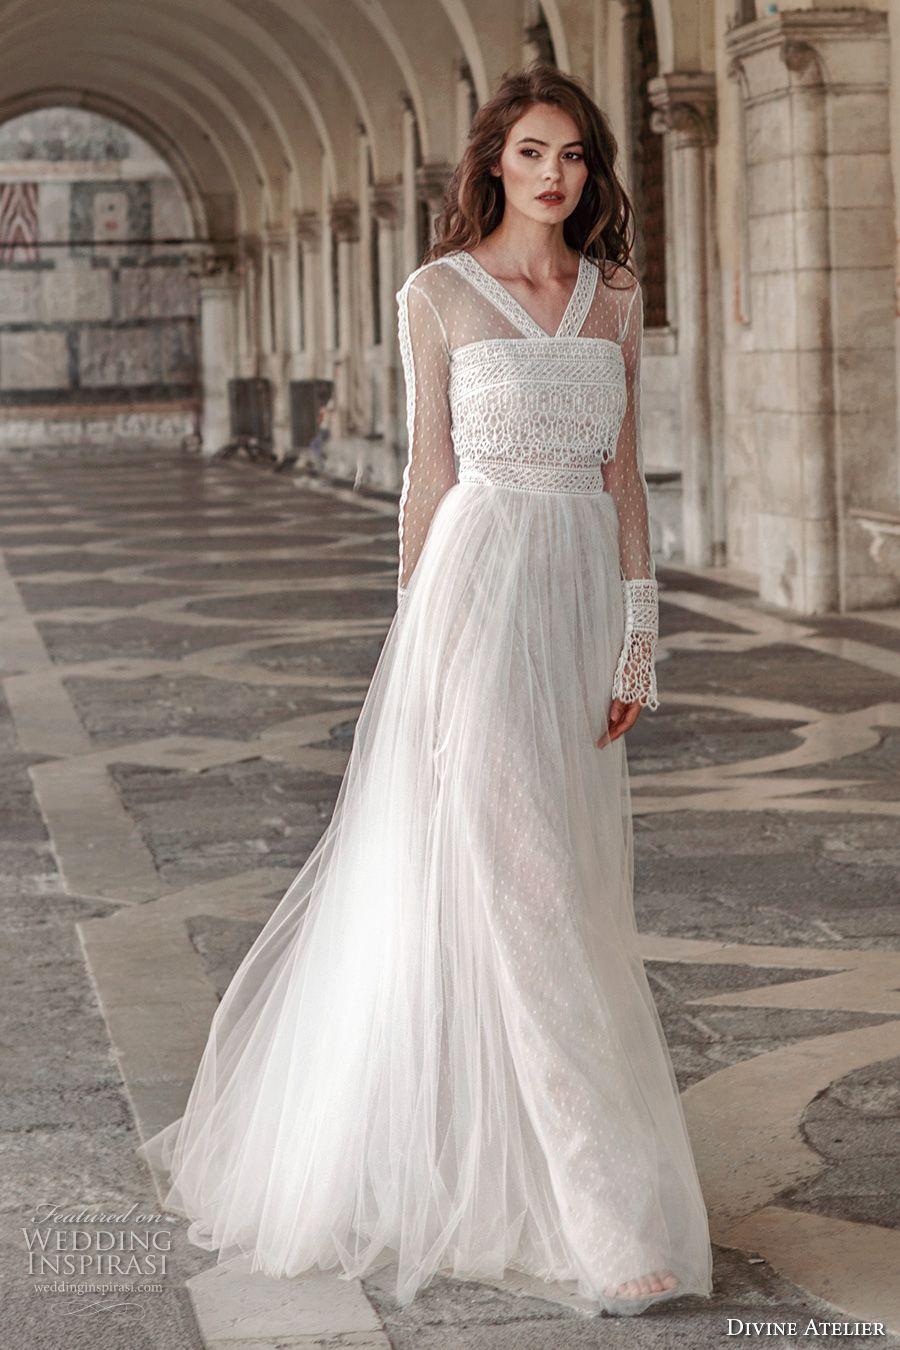 Divine atelier wedding dresses tulle skirts bodice and atelier